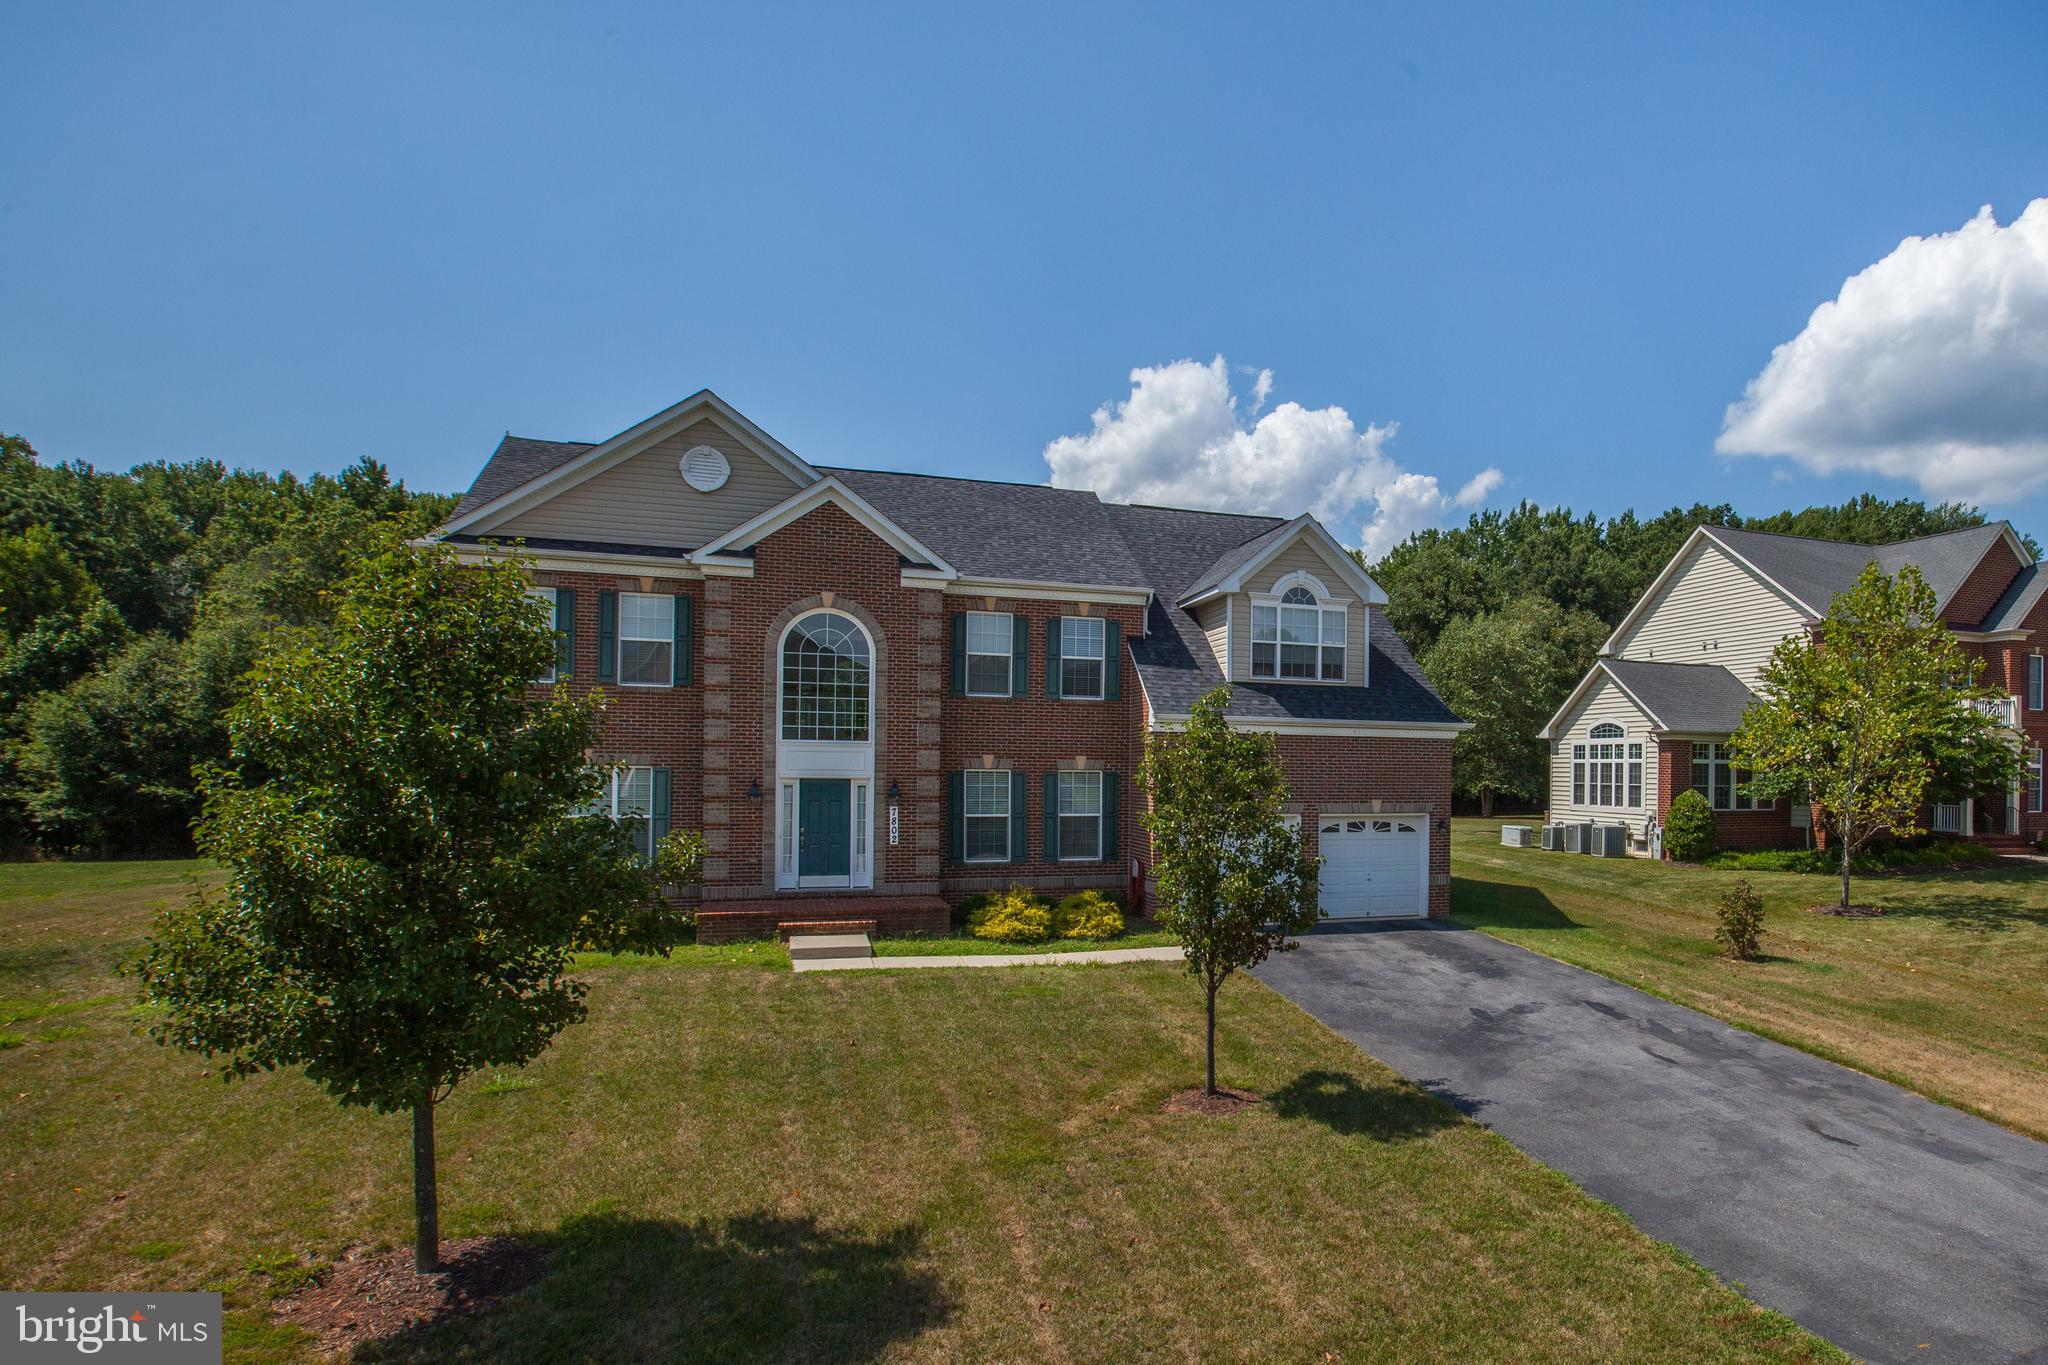 7802 MYSTIC RIVER TERRACE, GLENN DALE, MD 20769